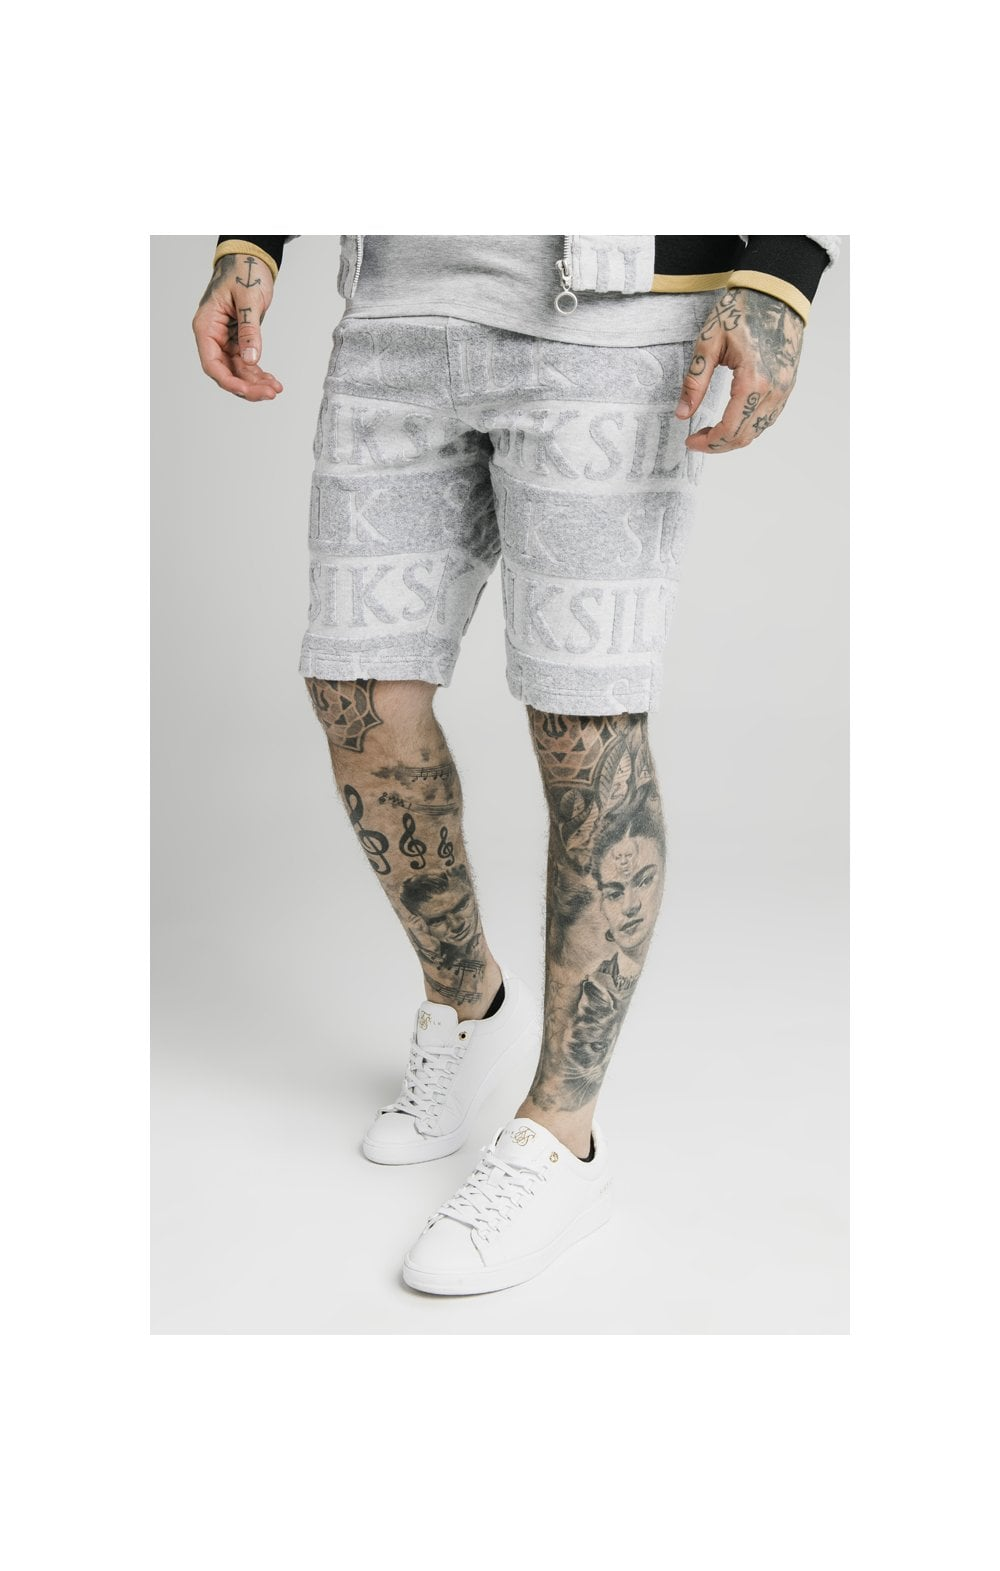 SikSilk Inverse Gym Shorts - Grey, Black & Gold